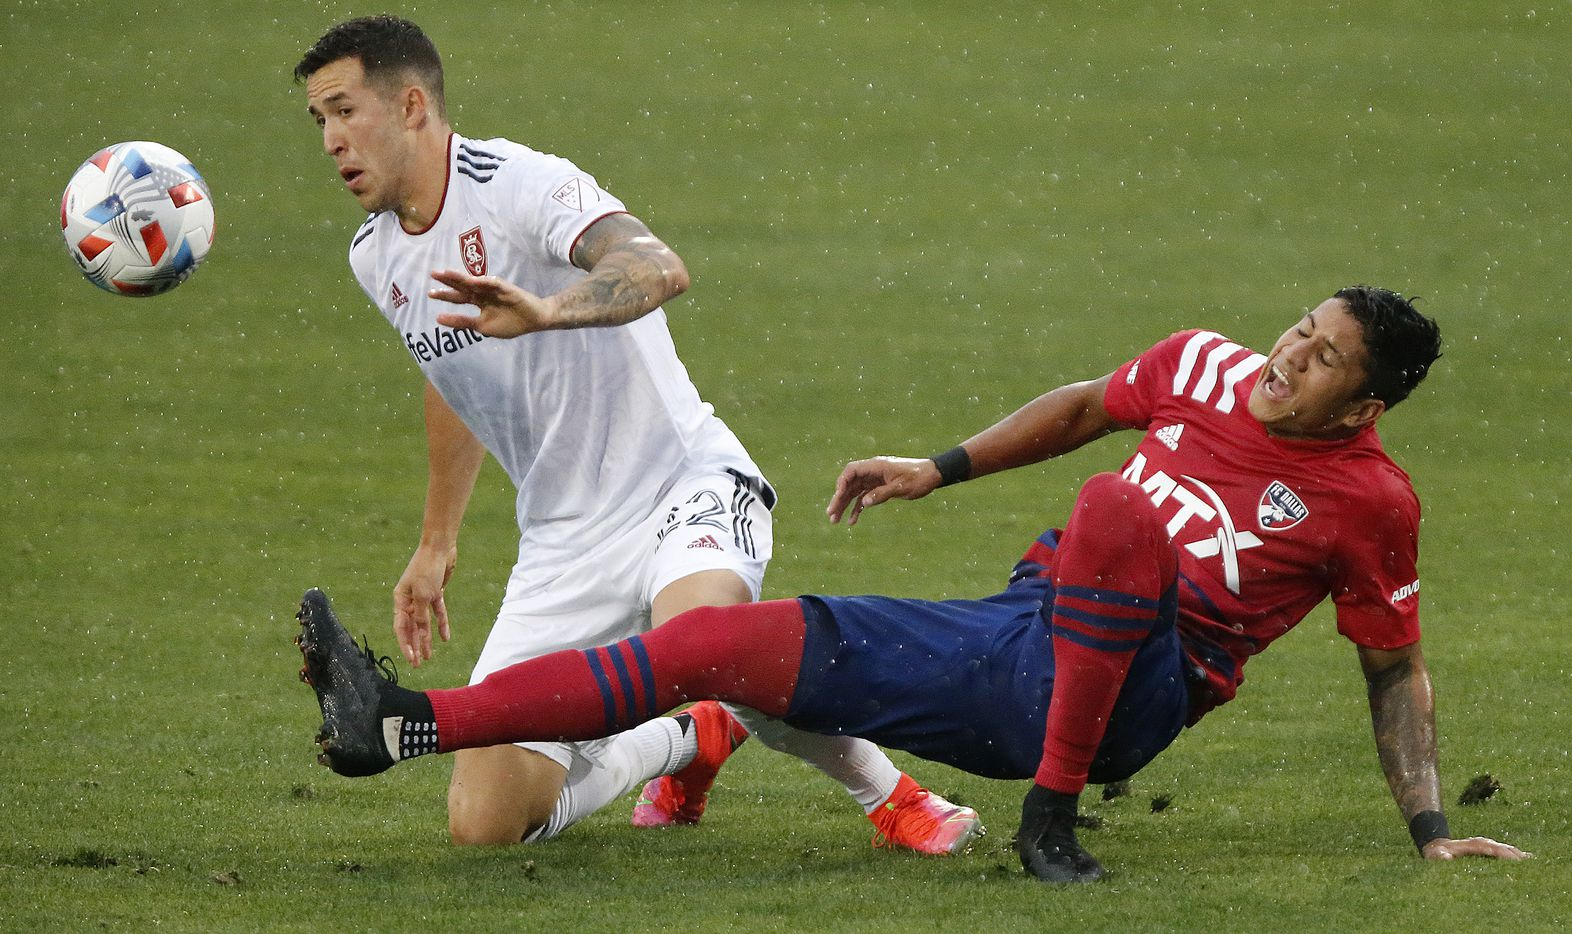 FC Dallas midfielder Freddy Vargas (17) collided with Real Salt Lake defender Aaron Herrera (22) during the first half as FC Dallas hosted Real Salt Lake at Toyota Stadium in Frisco on Saturday, May 22, 2021. (Stewart F. House/Special Contributor)